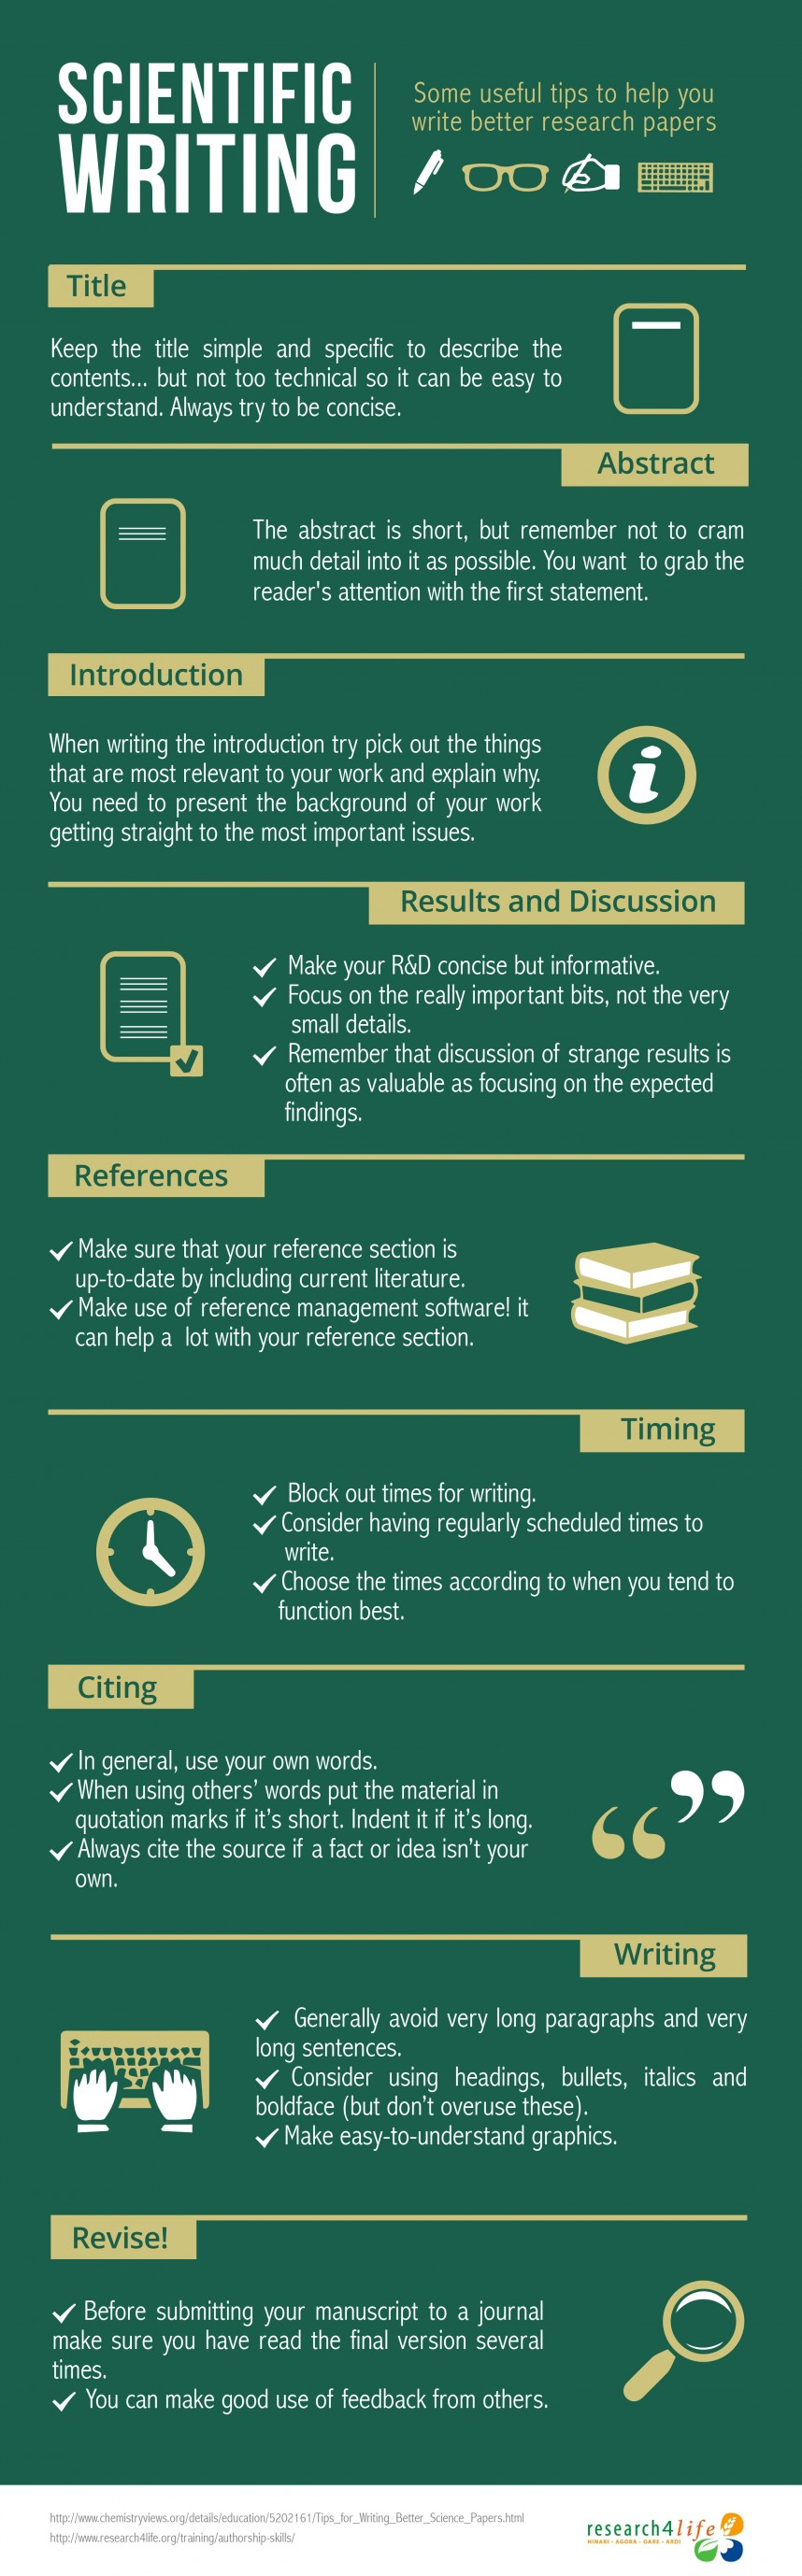 001 Research Paper Tips For Papers Scientific Writing Wondrous An Effective Title Note Taking Reading